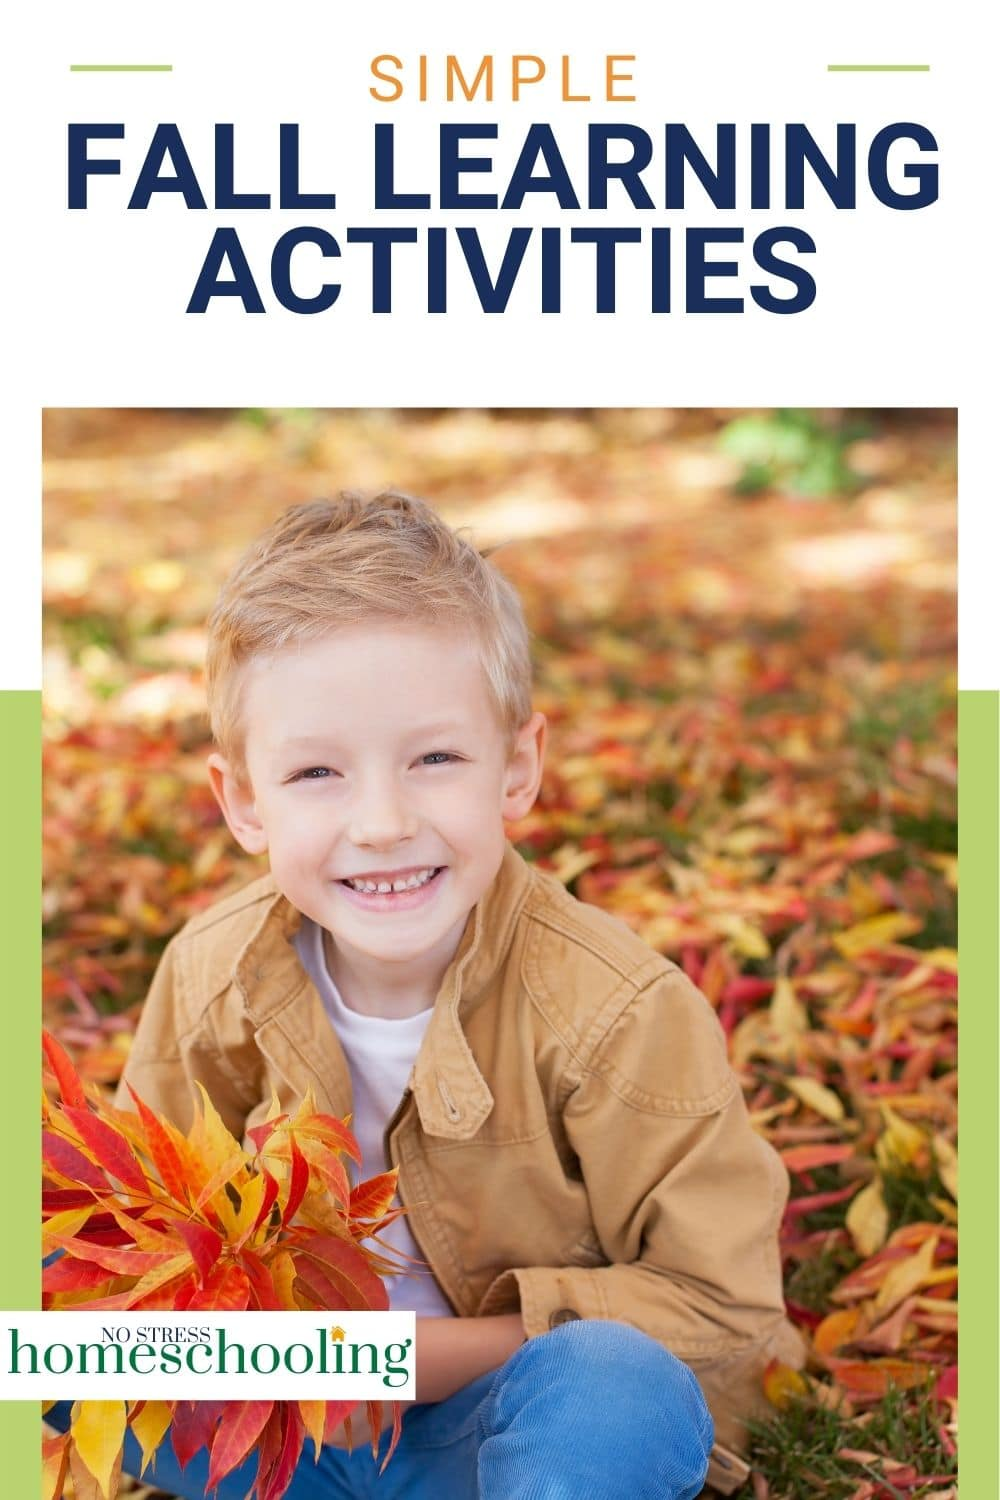 image showing simple fall learning activities